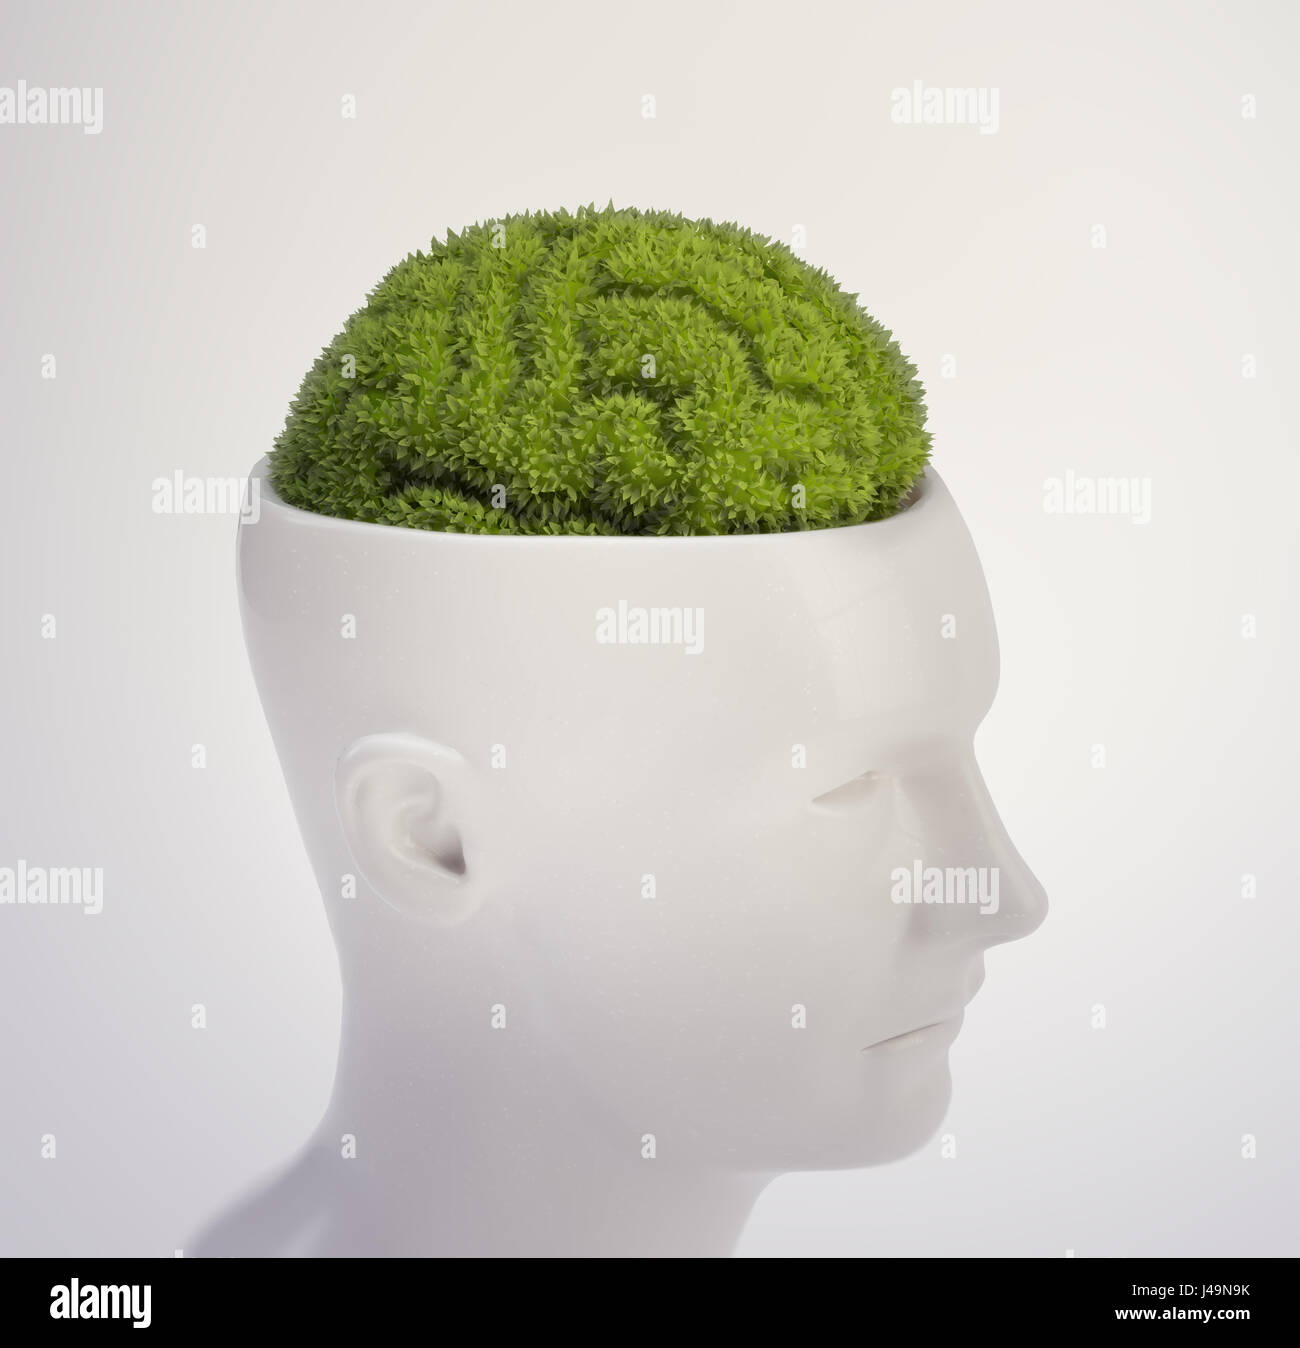 Plante en forme de cerveau humain - intelligence et mémoire concept 3D illustration Photo Stock